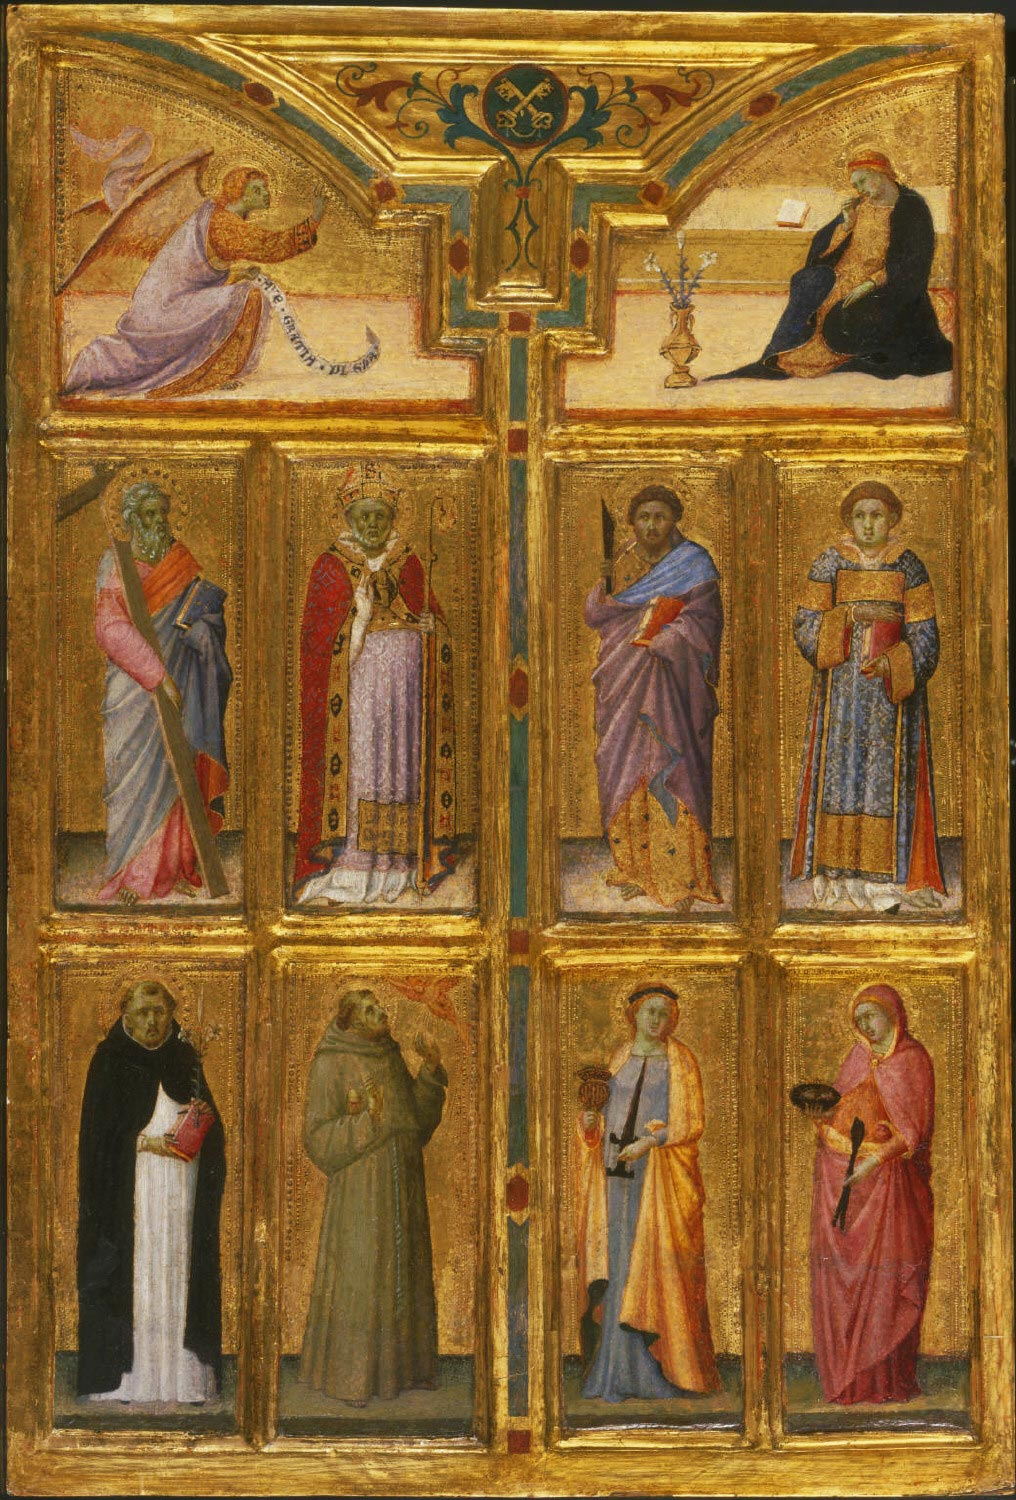 Annunciate Angel, the Apostle Andrew, a Bishop Saint (Savinus?), and Saints Dominic and Francis of Assisi [left]; Virgin Annunciate and Saints Bartholomew, Lawrence, Lucy, and Agatha [right]